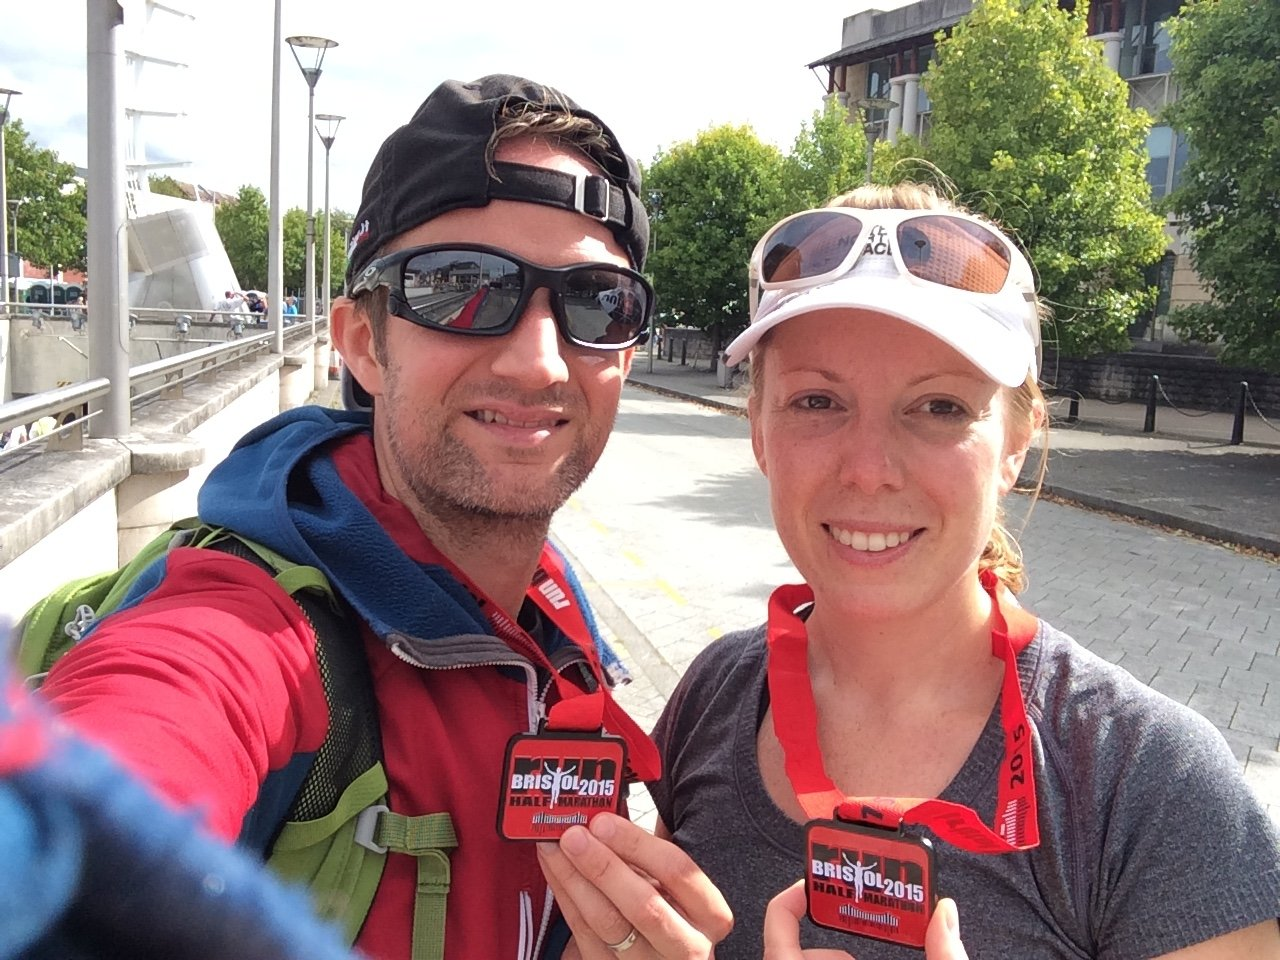 oakley red jacket xj5i  They generally look good and fit well Post Bristol Half Marathon selfie  with Helen